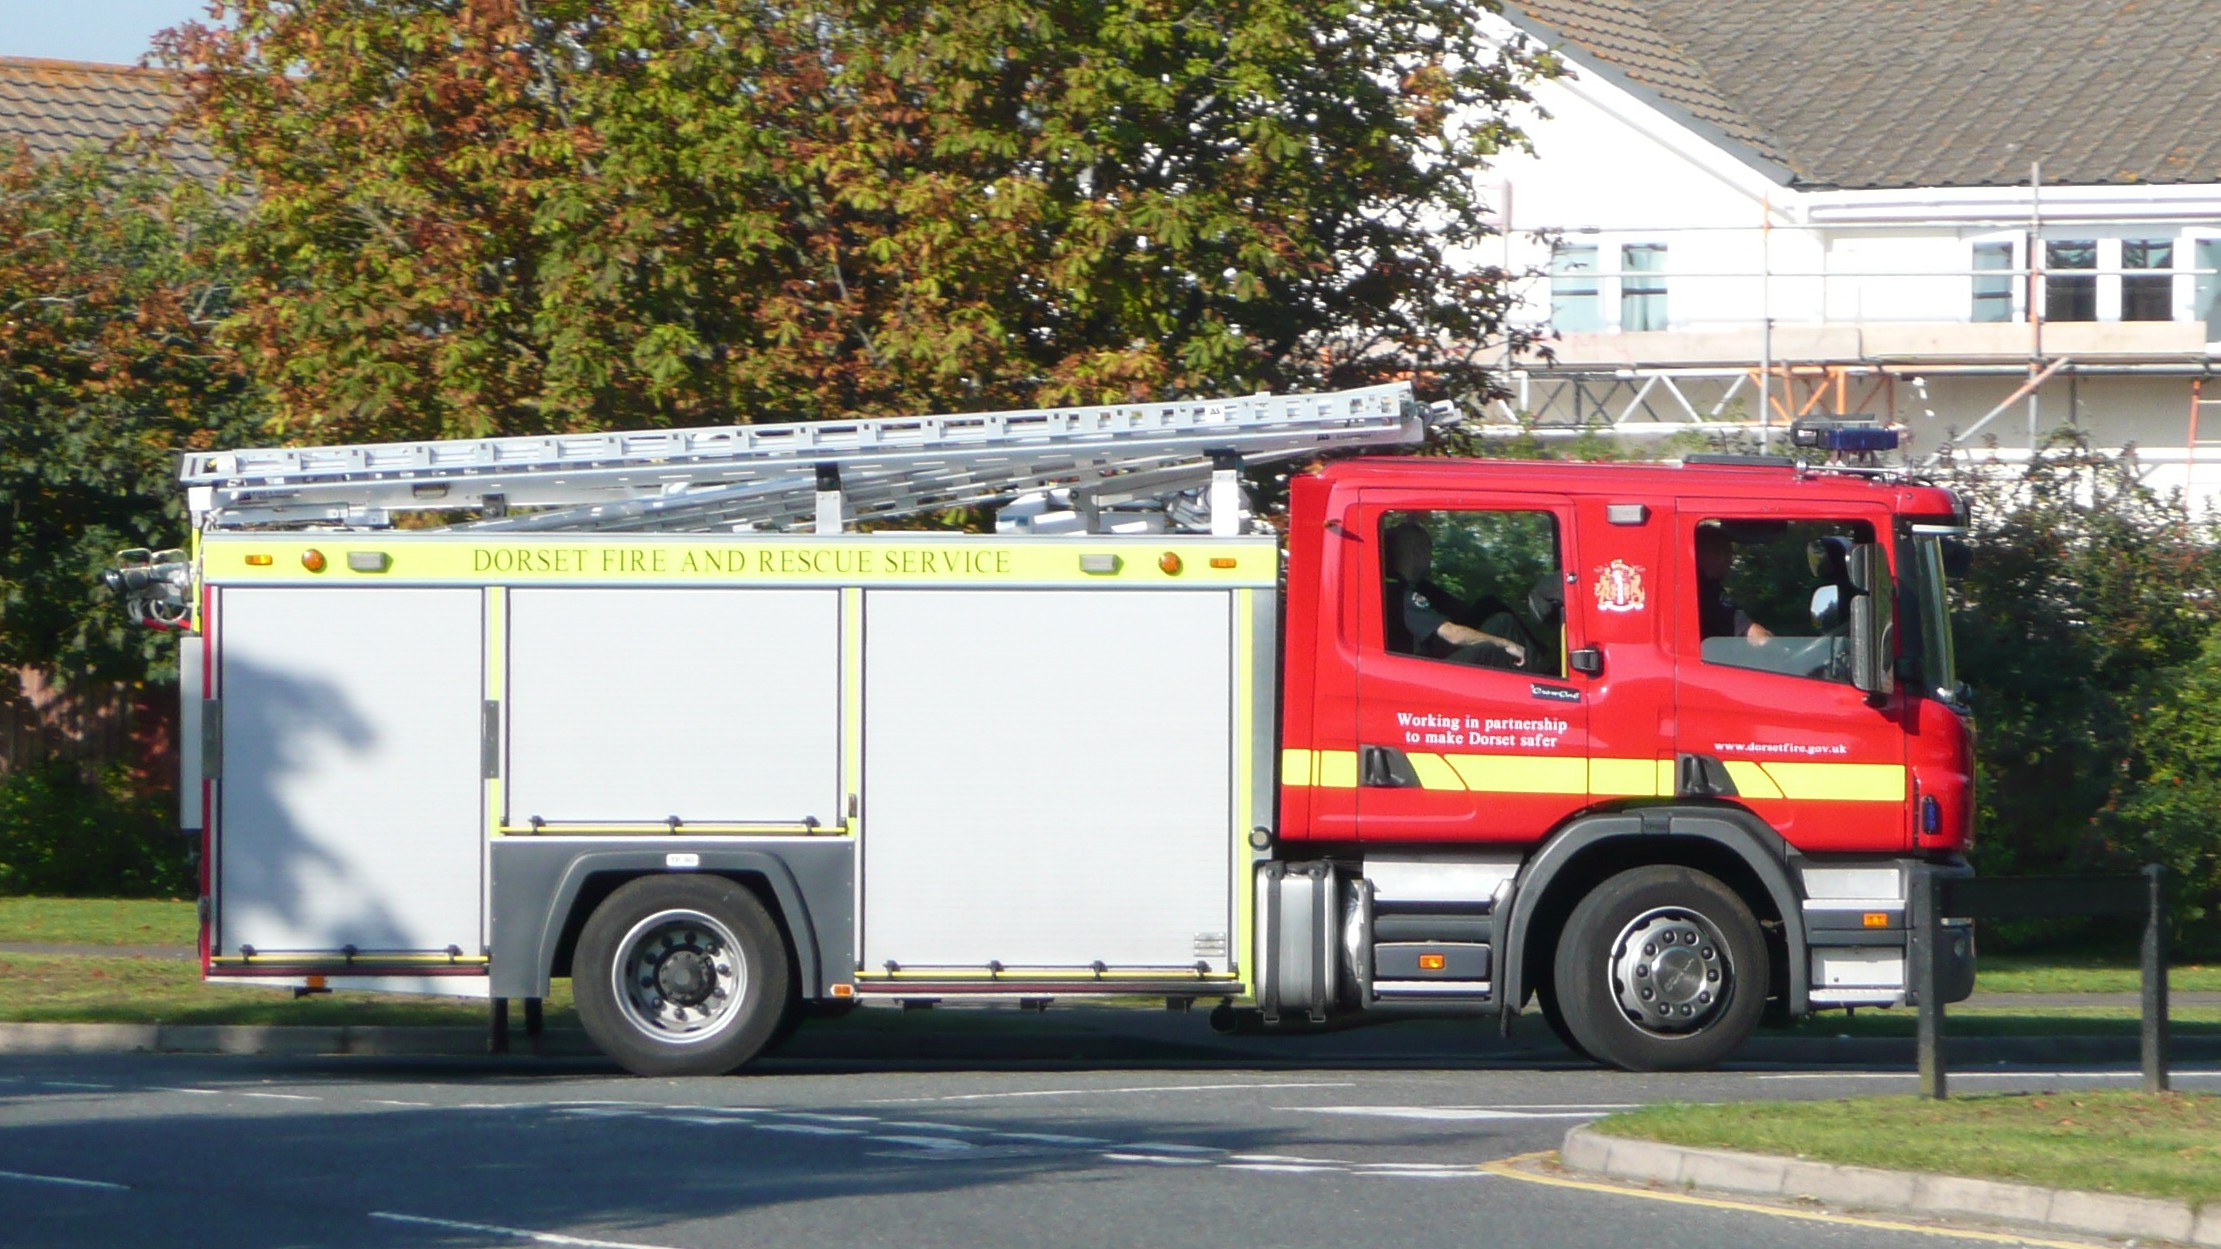 the fire engine - photo #34